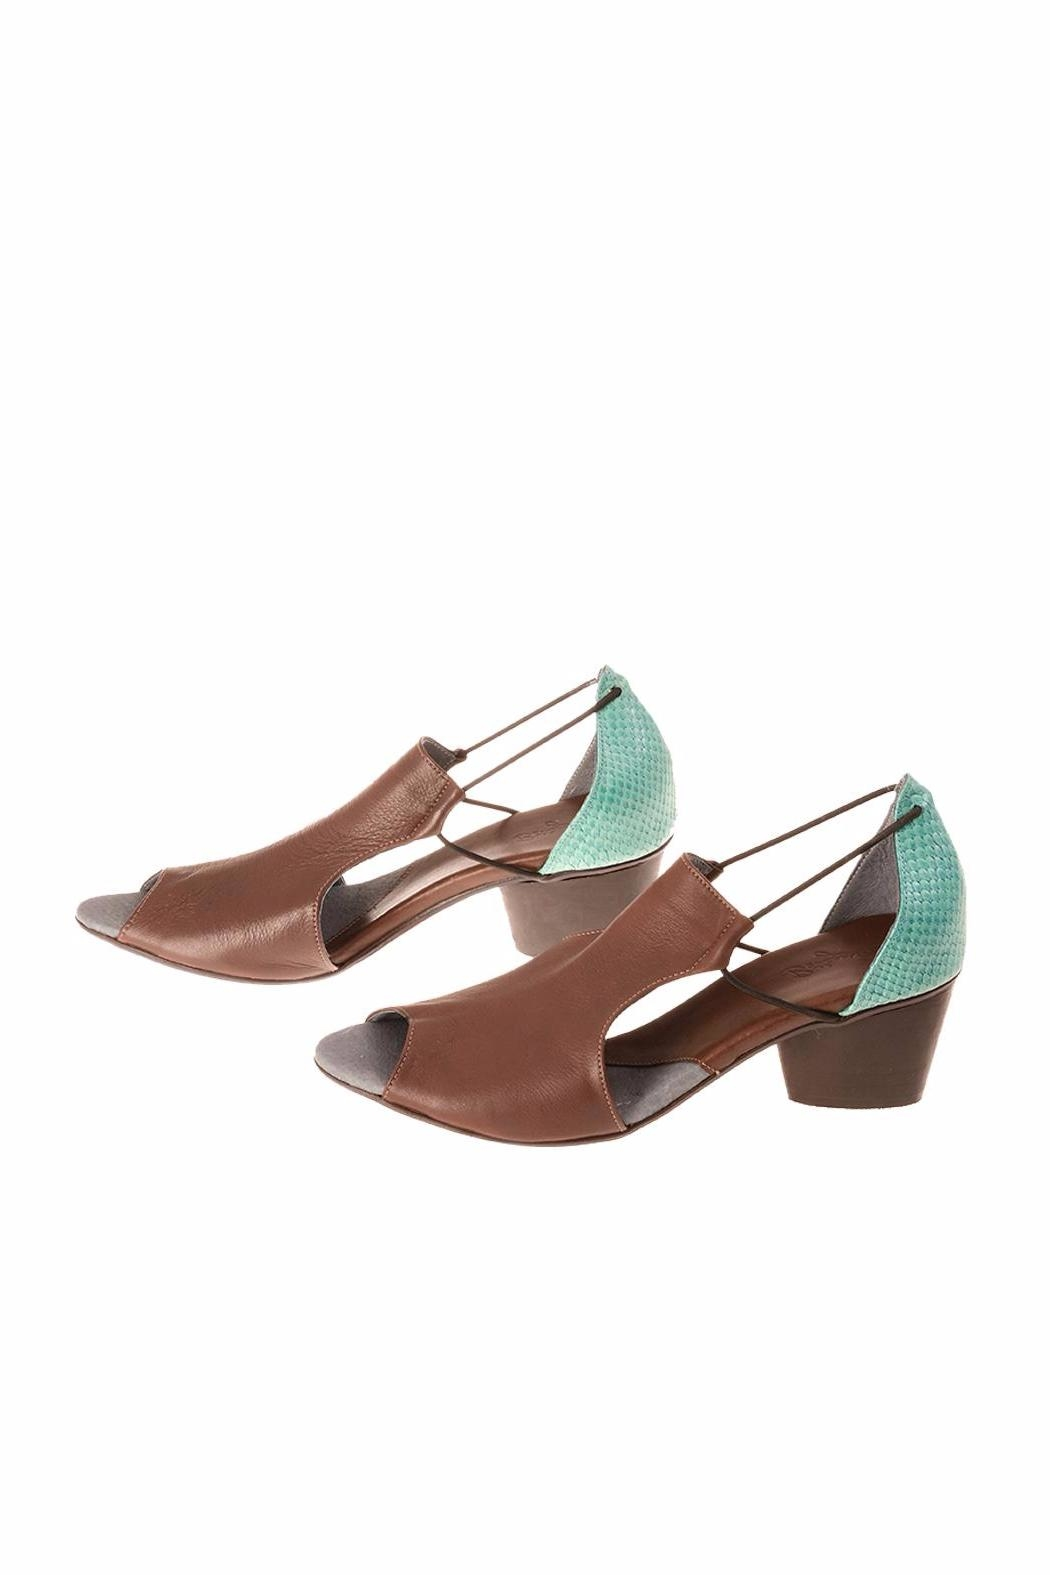 Bottega Bash Brown & Turquoise Heel - Main Image